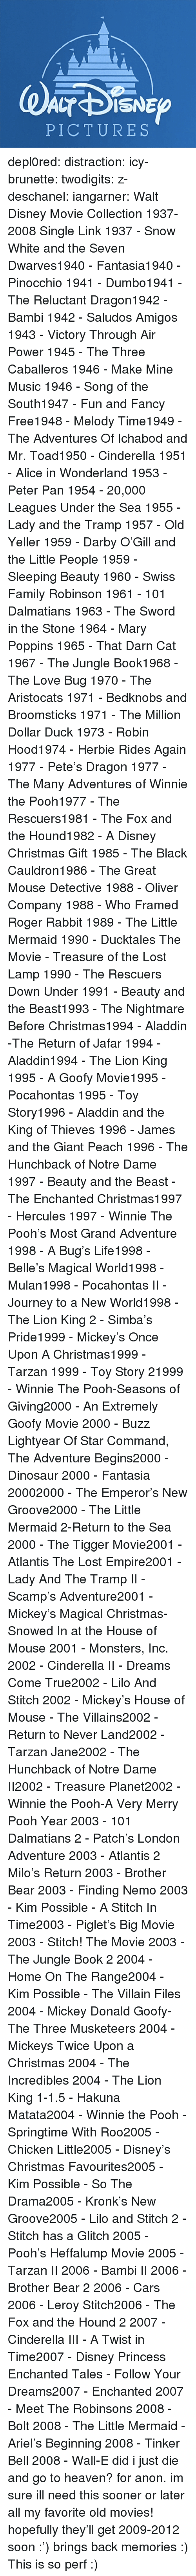 New Groove: PICTURES depl0red:  distraction:   icy-brunette:   twodigits:   z-deschanel:   iangarner:   Walt Disney Movie Collection 1937-2008 Single Link      1937 - Snow White and the Seven Dwarves1940 - Fantasia1940 - Pinocchio 1941 - Dumbo1941 - The Reluctant Dragon1942 - Bambi 1942 - Saludos Amigos 1943 - Victory Through Air Power 1945 - The Three Caballeros 1946 - Make Mine Music 1946 - Song of the South1947 - Fun and Fancy Free1948 - Melody Time1949 - The Adventures Of Ichabod and Mr. Toad1950 - Cinderella 1951 - Alice in Wonderland 1953 - Peter Pan 1954 - 20,000 Leagues Under the Sea 1955 - Lady and the Tramp 1957 - Old Yeller 1959 - Darby O'Gill and the Little People 1959 - Sleeping Beauty 1960 - Swiss Family Robinson 1961 - 101 Dalmatians 1963 - The Sword in the Stone 1964 - Mary Poppins 1965 - That Darn Cat 1967 - The Jungle Book1968 - The Love Bug 1970 - The Aristocats 1971 - Bedknobs and Broomsticks 1971 - The Million Dollar Duck 1973 - Robin Hood1974 - Herbie Rides Again 1977 - Pete's Dragon 1977 - The Many Adventures of Winnie the Pooh1977 - The Rescuers1981 - The Fox and the Hound1982 - A Disney Christmas Gift 1985 - The Black Cauldron1986 - The Great Mouse Detective 1988 - Oliver  Company 1988 - Who Framed Roger Rabbit 1989 - The Little Mermaid 1990 - Ducktales The Movie - Treasure of the Lost Lamp 1990 - The Rescuers Down Under 1991 - Beauty and the Beast1993 - The Nightmare Before Christmas1994 - Aladdin -The Return of Jafar 1994 - Aladdin1994 - The Lion King 1995 - A Goofy Movie1995 - Pocahontas 1995 - Toy Story1996 - Aladdin and the King of Thieves 1996 - James and the Giant Peach 1996 - The Hunchback of Notre Dame 1997 - Beauty and the Beast - The Enchanted Christmas1997 - Hercules 1997 - Winnie The Pooh's Most Grand Adventure 1998 - A Bug's Life1998 - Belle's Magical World1998 - Mulan1998 - Pocahontas II - Journey to a New World1998 - The Lion King 2 - Simba's Pride1999 - Mickey's Once Upon A Christmas1999 - Tarzan 1999 - Toy Story 21999 - Win